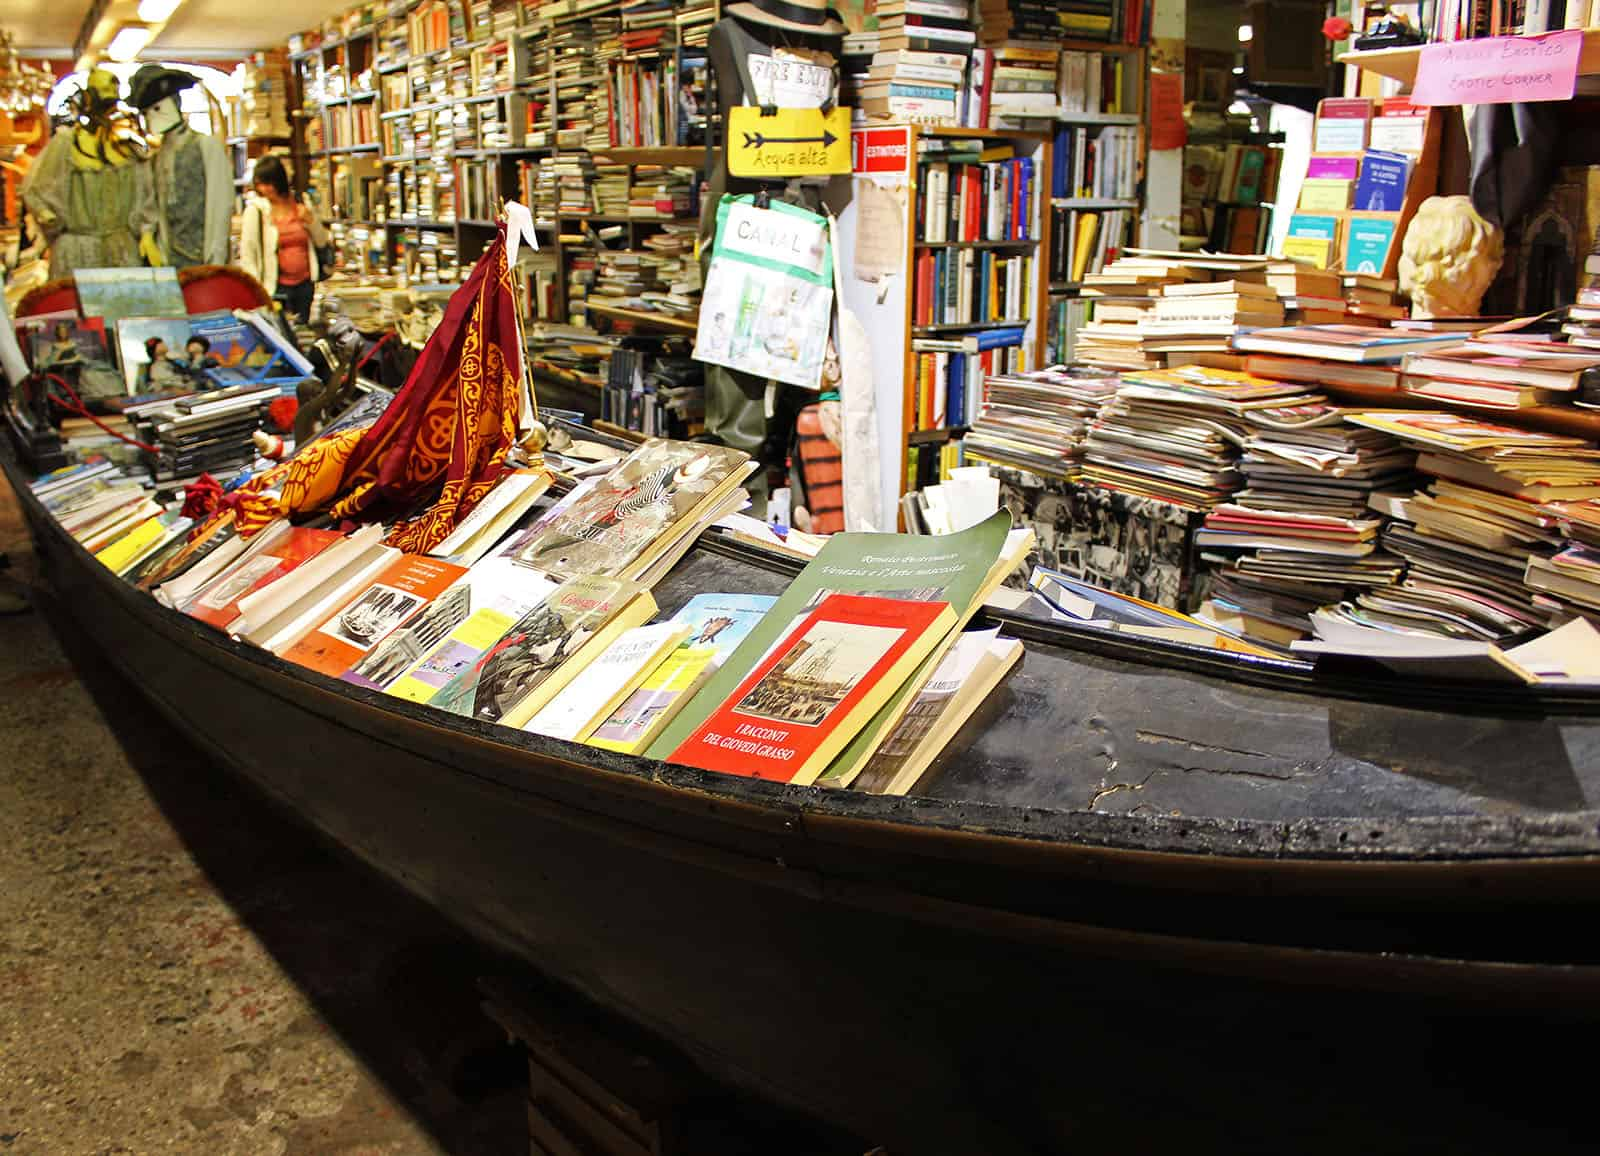 Libreria acqua alta bookstore in venice justin plus lauren